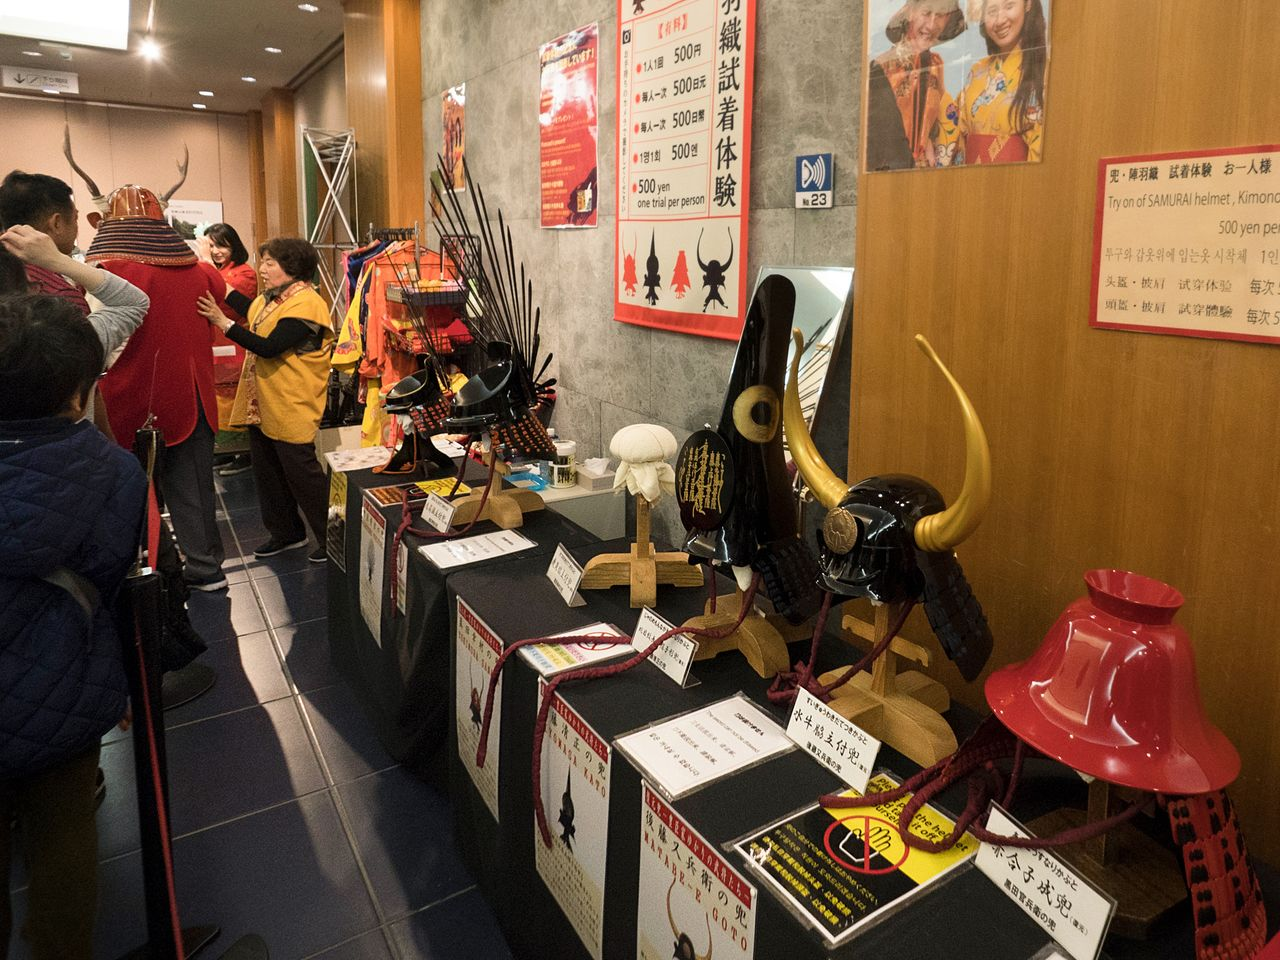 Several helmets are available for trying on, including that of Toyotomi Hideyoshi (second from right).